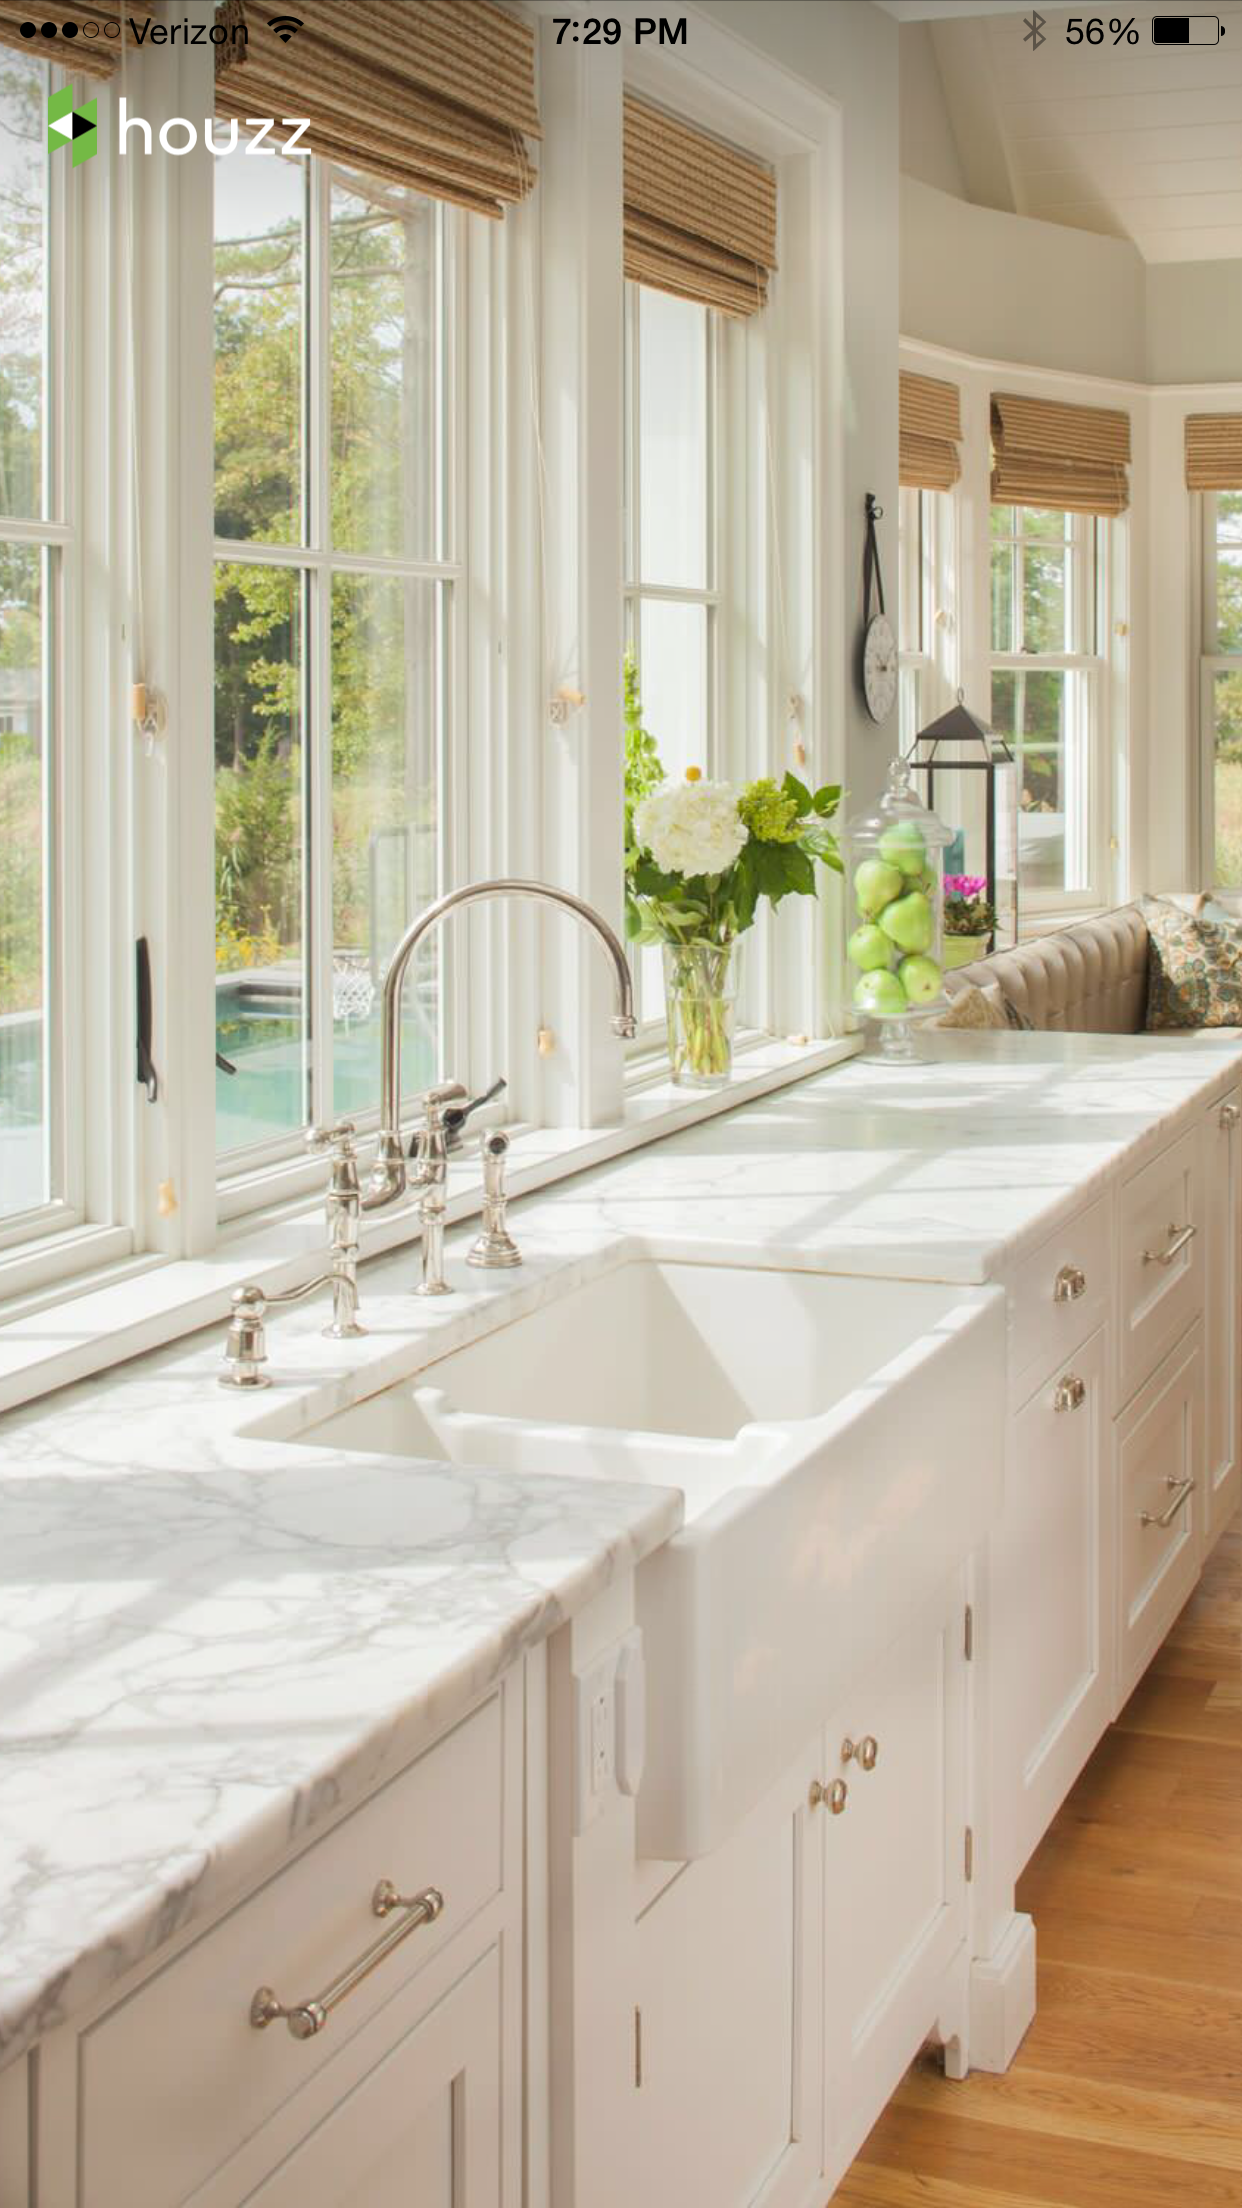 Love the natural light, white and double basin